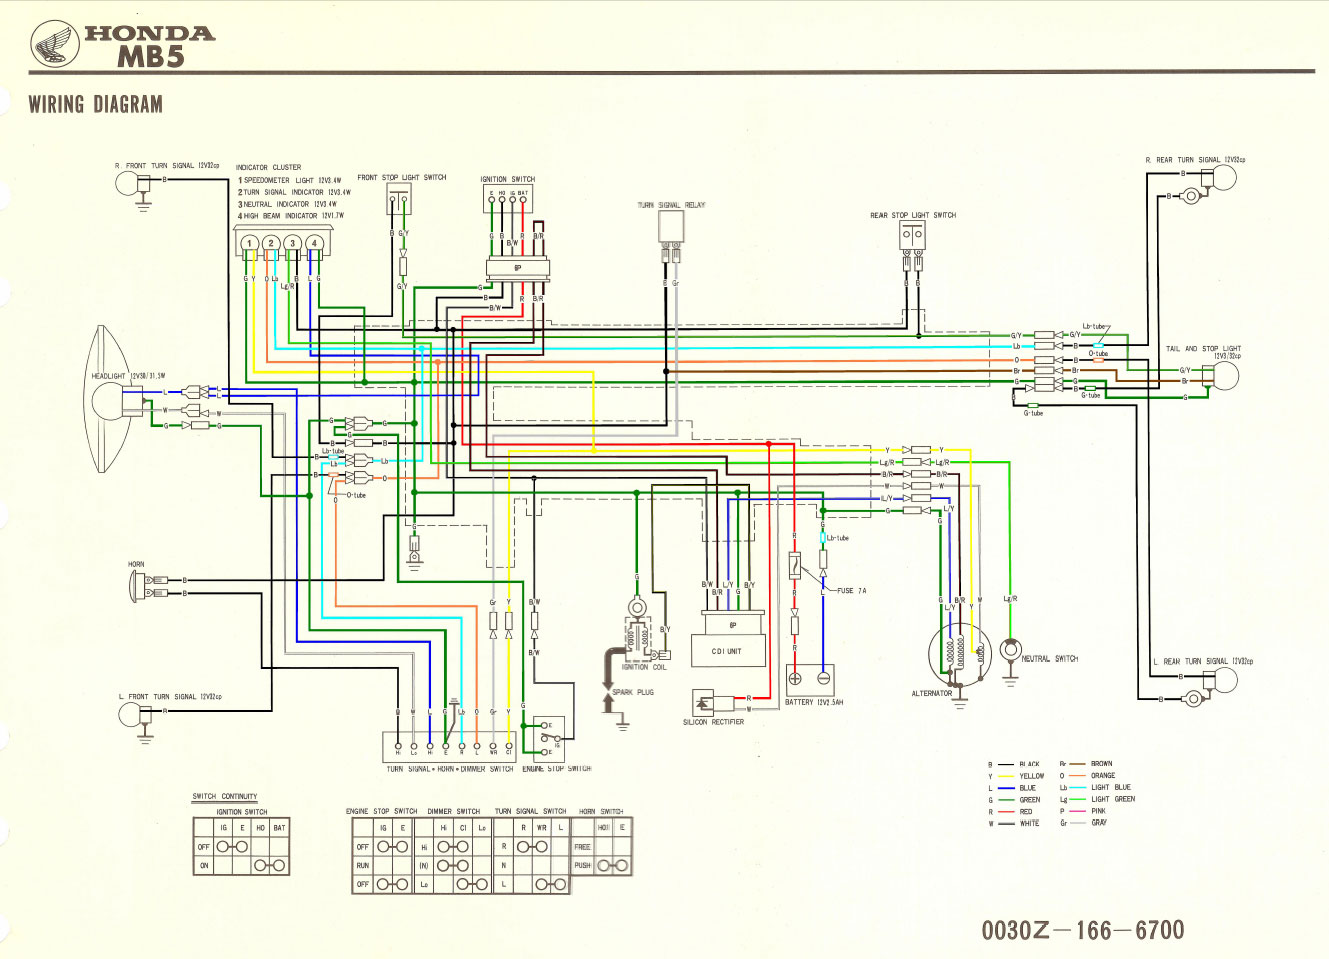 Xl350r Wiring Diagram Page 3 And Schematics Honda Xl250r 1982 Mb5 1987